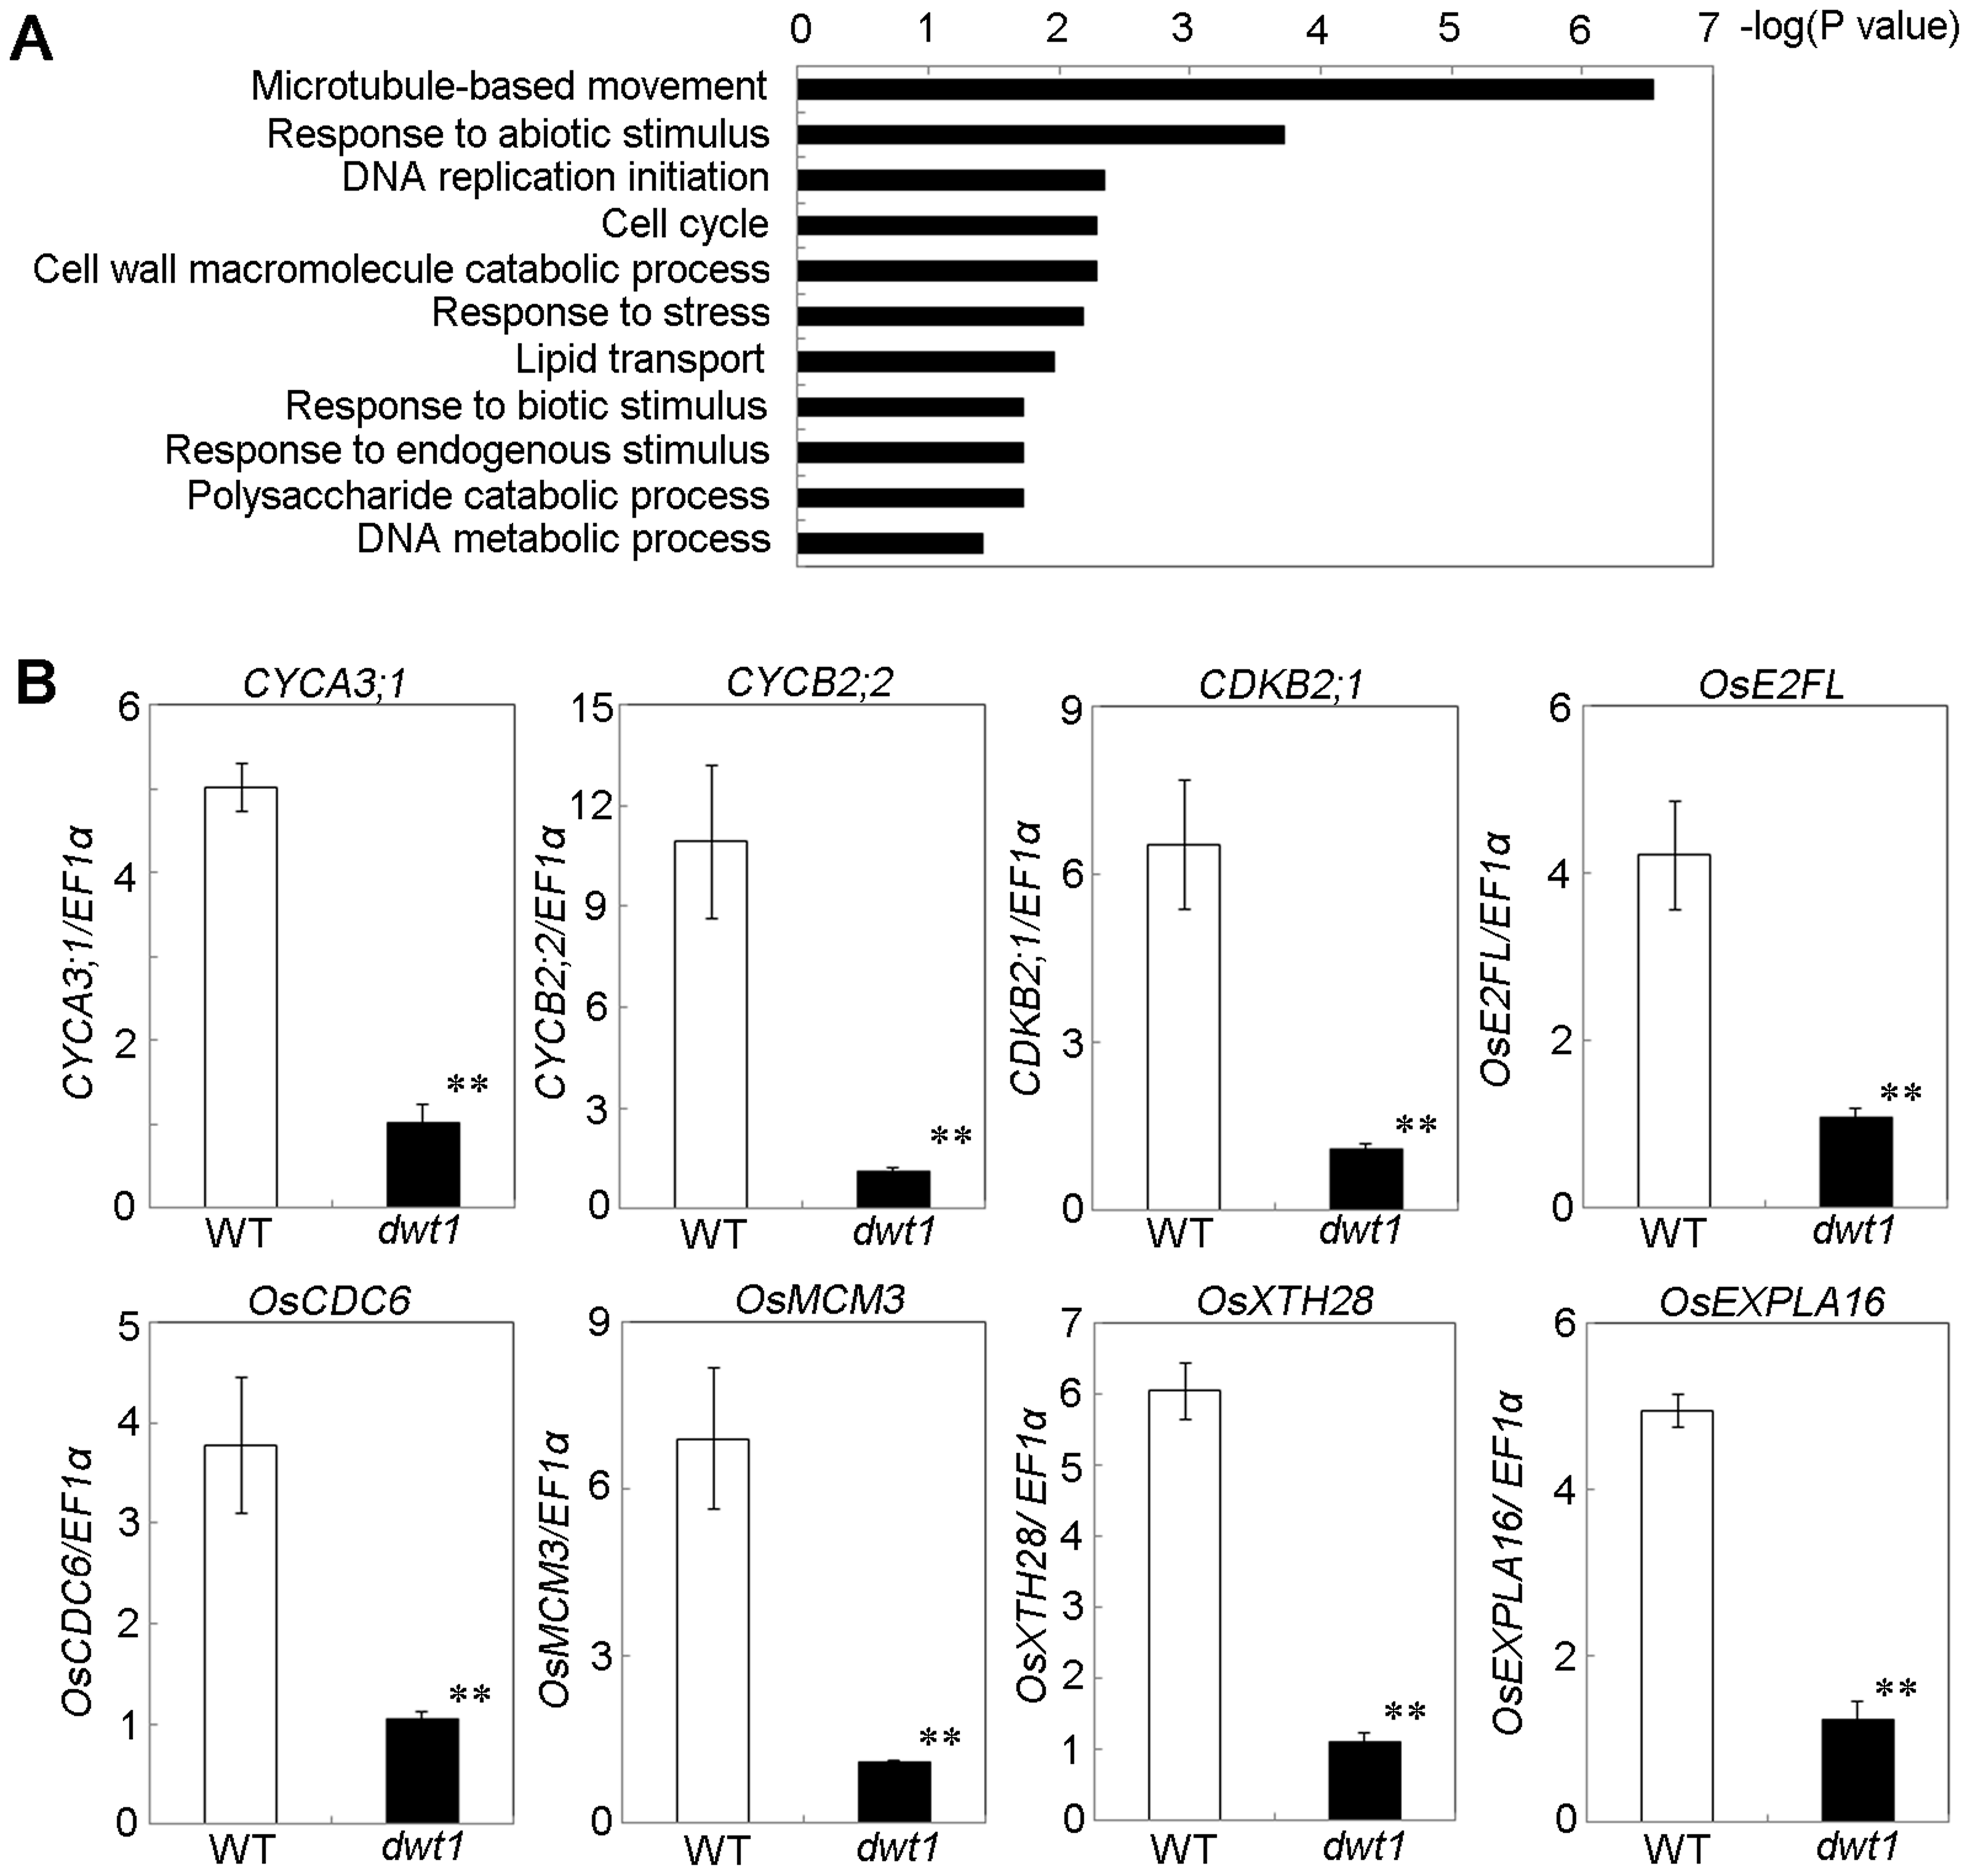 <i>DWT1</i> affects the expression of genes related to cell division and cell elongation.